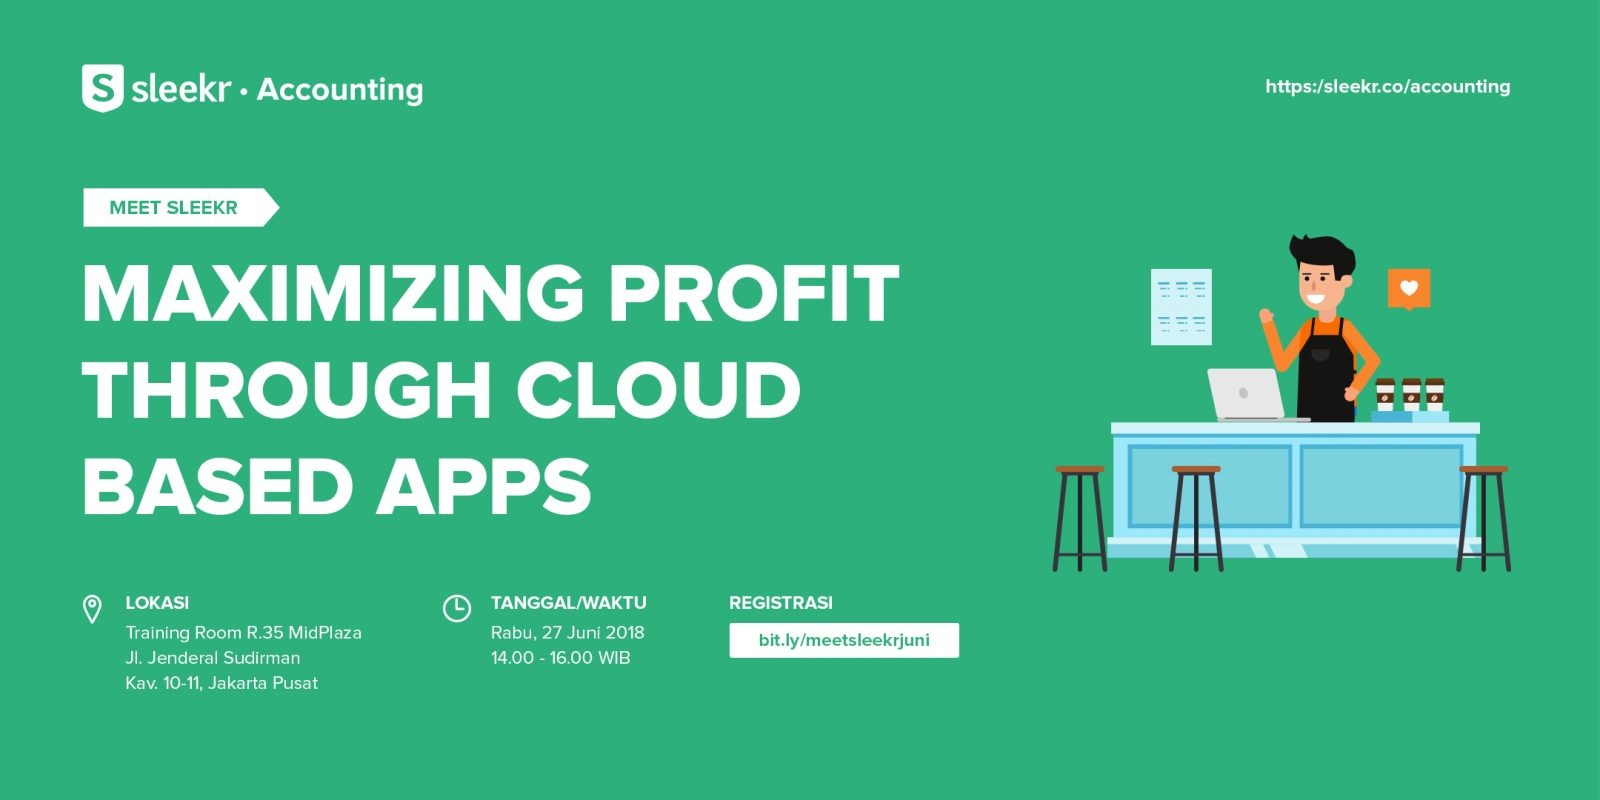 Meet Sleekr : Maximizing Profit through Cloud Based Apps